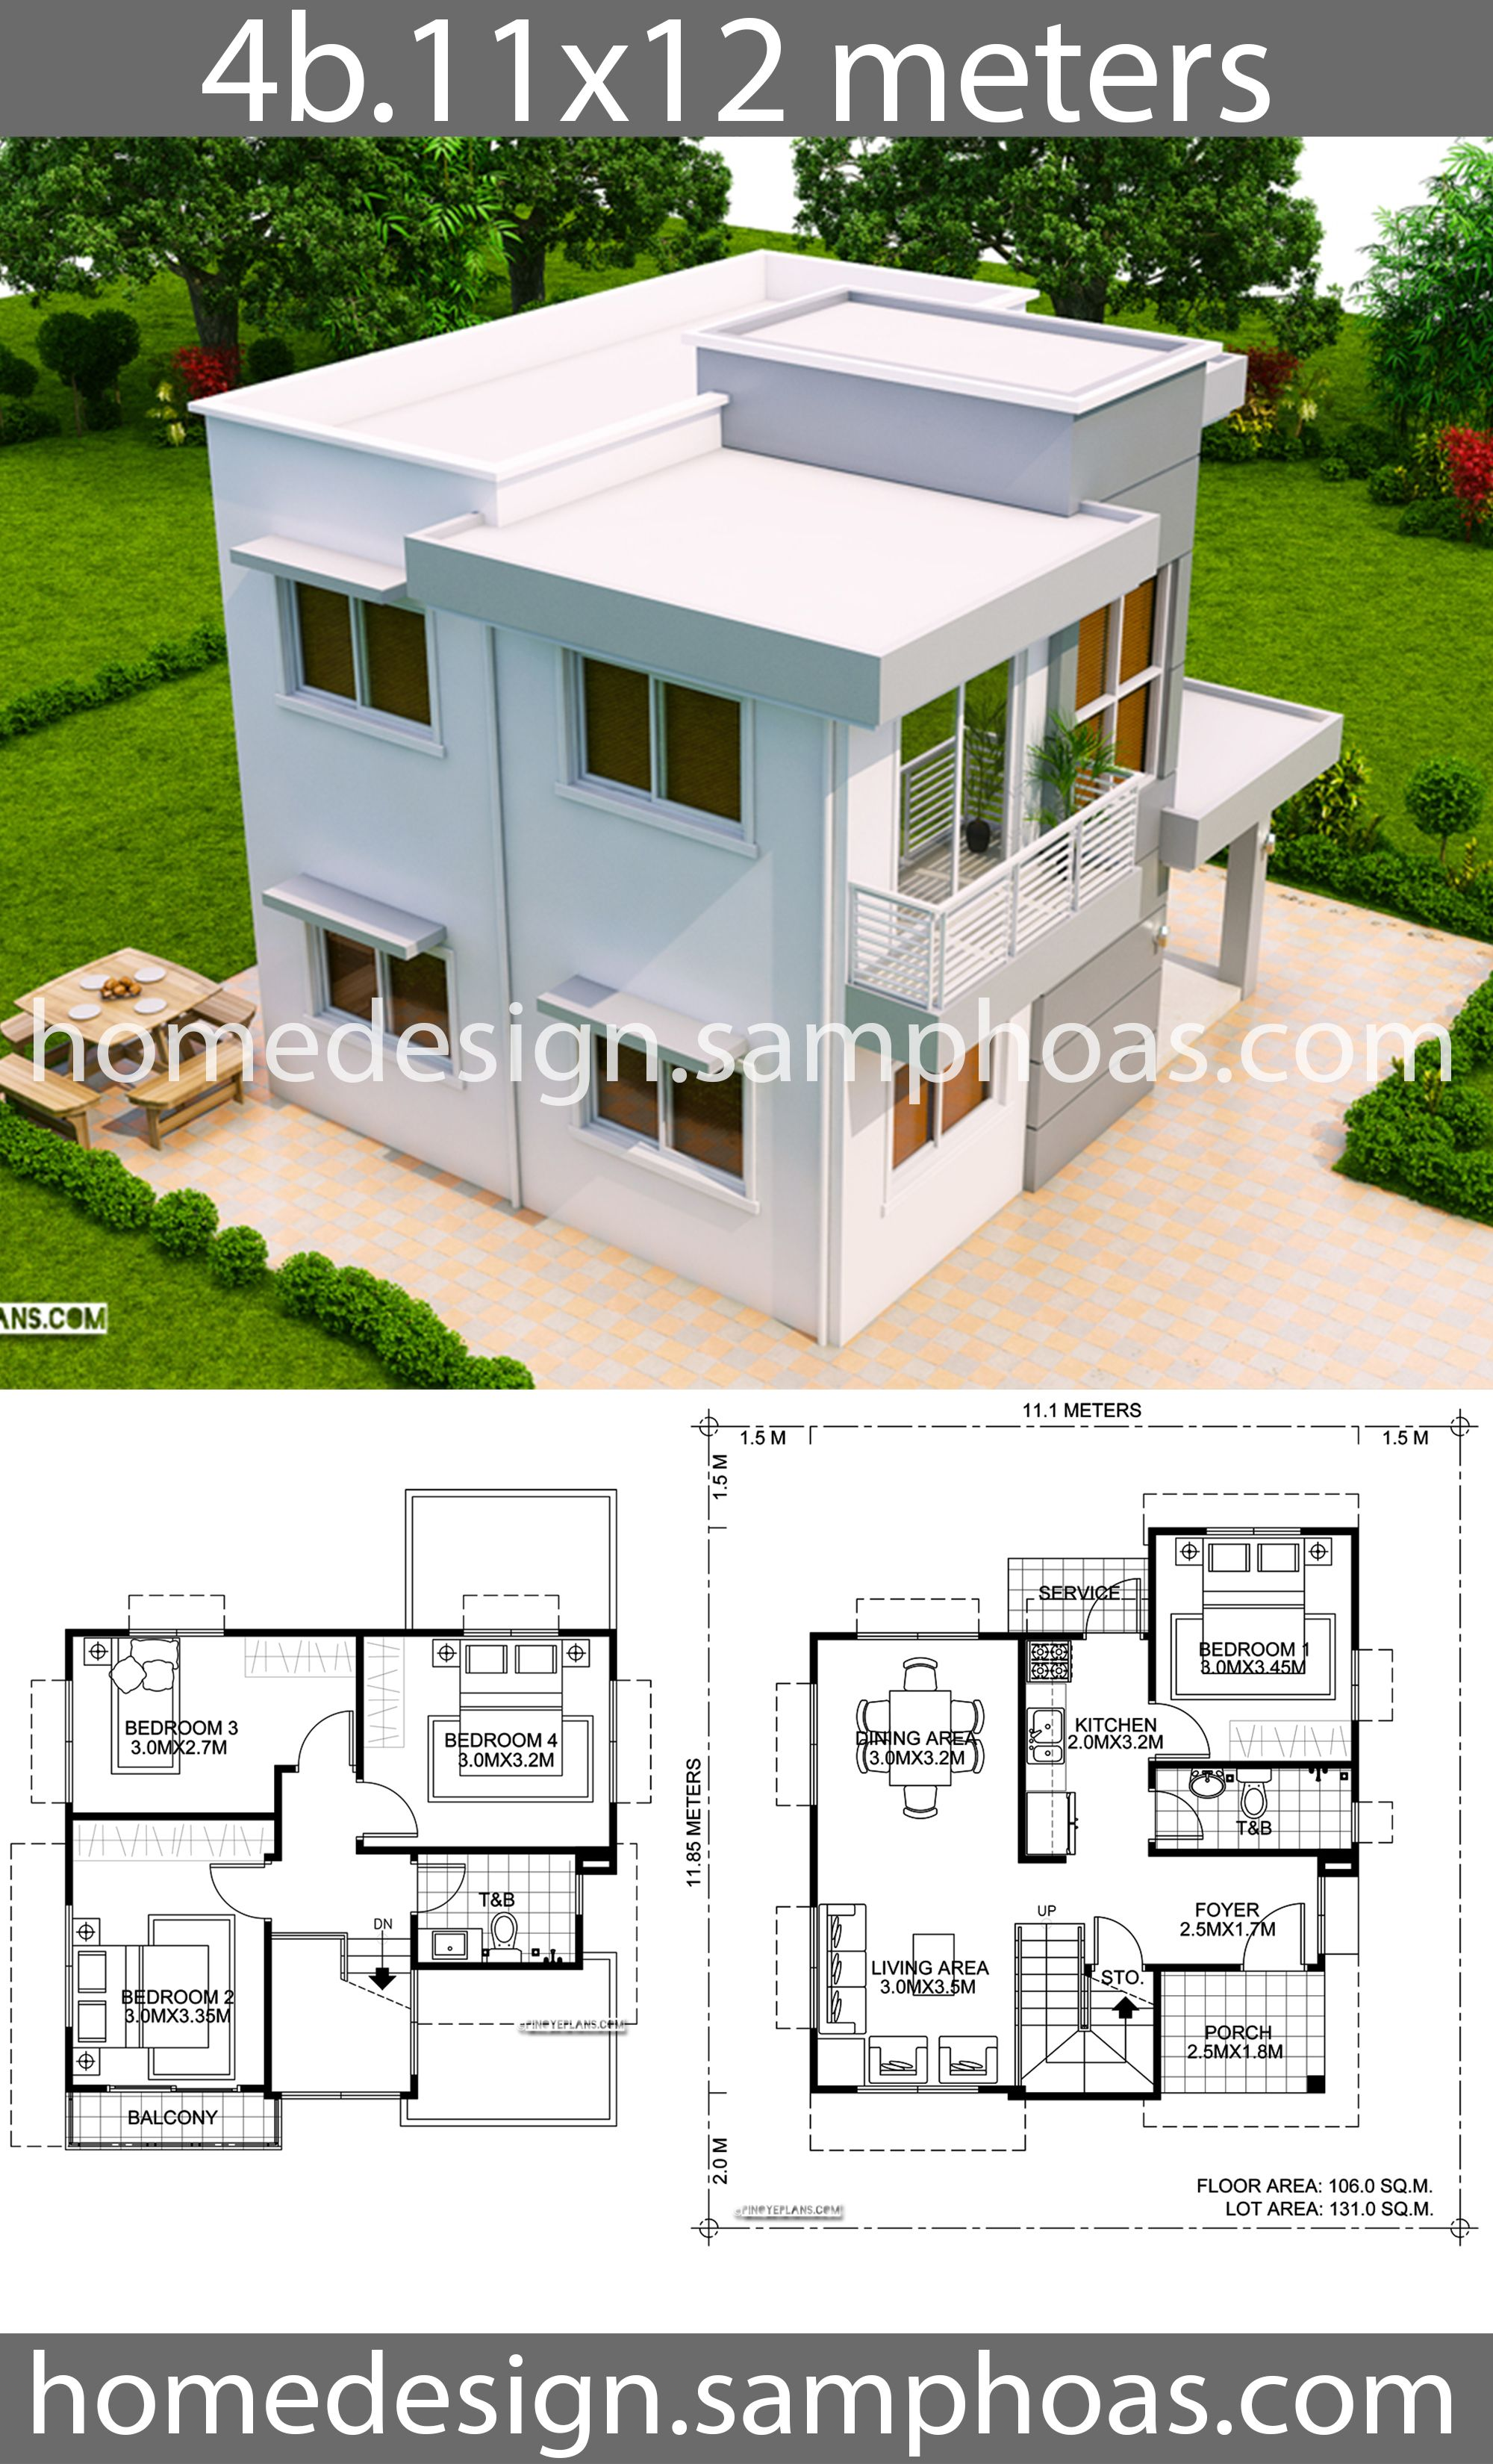 Pin By Wk Impact Impact On House Plans Idea Bungalow House Design Duplex House Design Home Design Plans